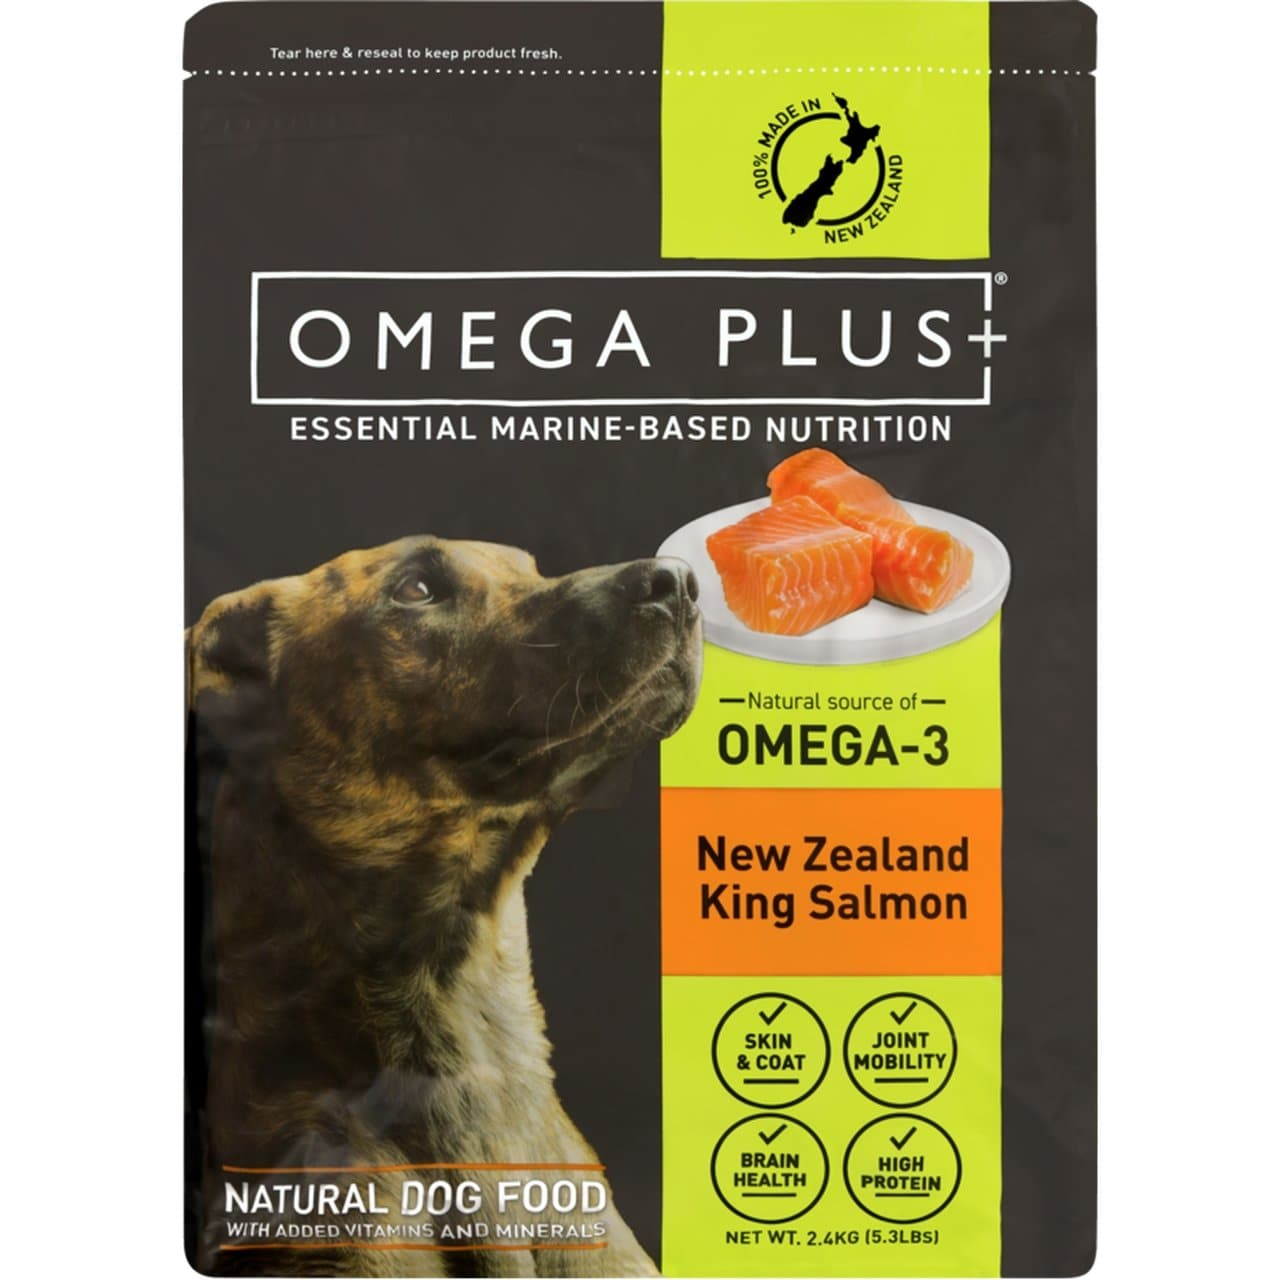 Omega Plus King Salmon 2.4kg Bag - Summers Pet Accessories